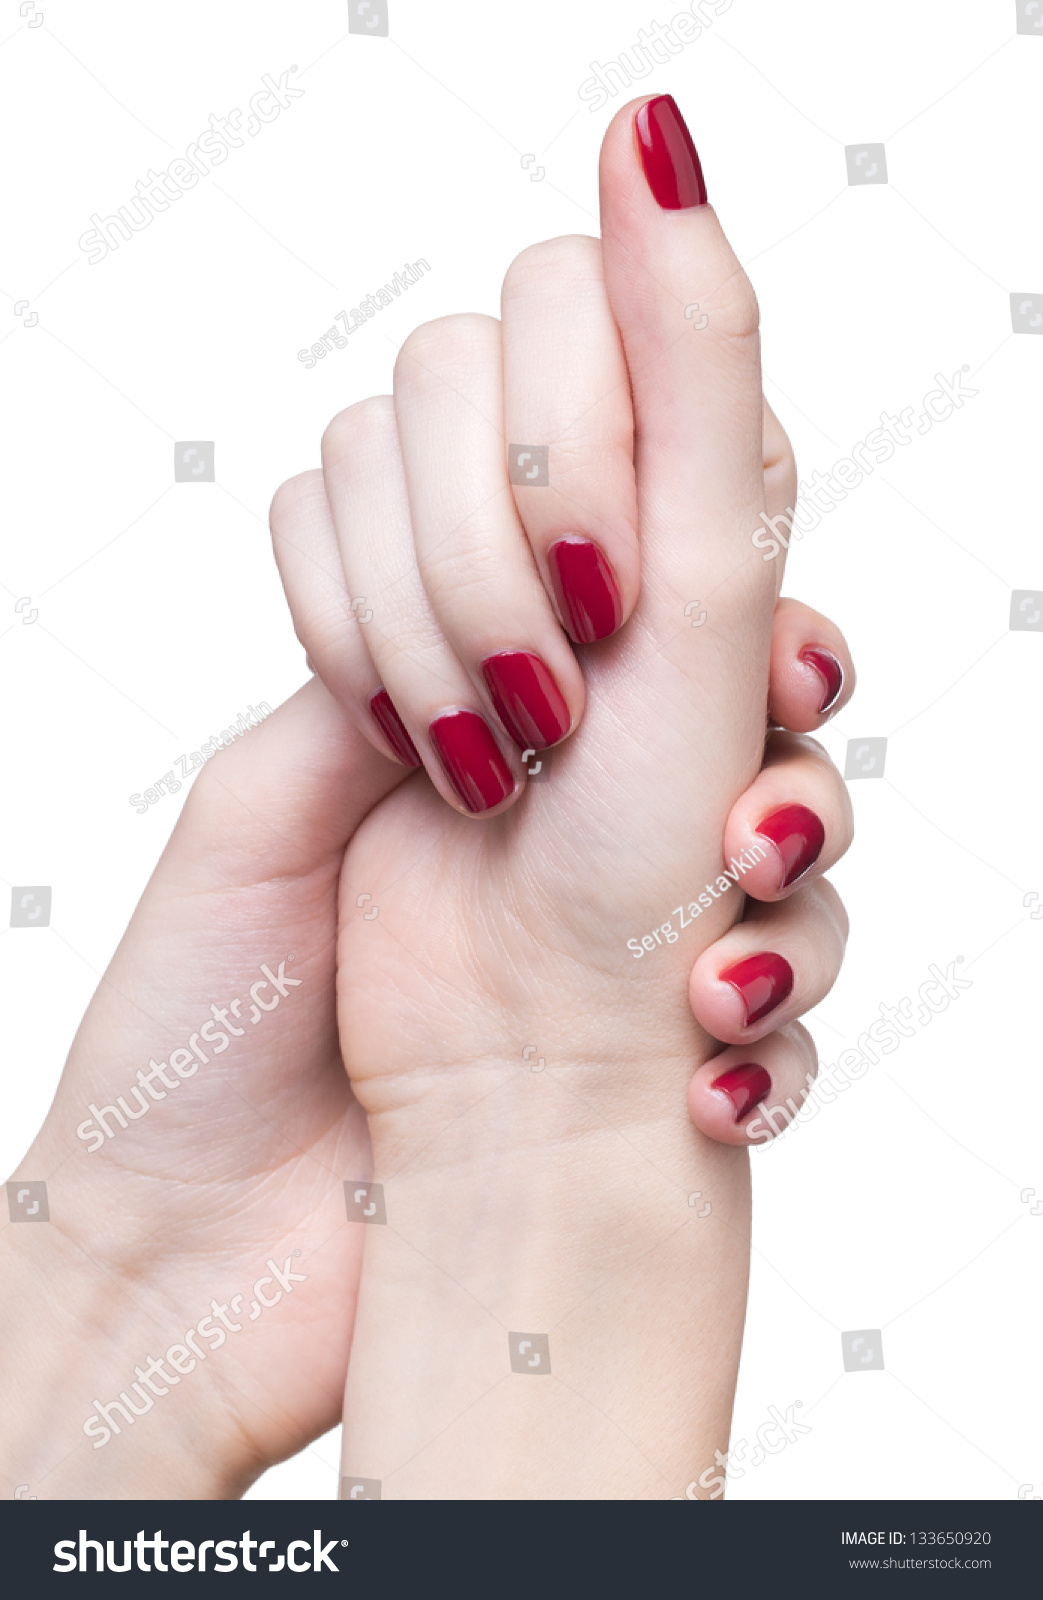 Hands With Woman'S Professional Red Nails Manicure